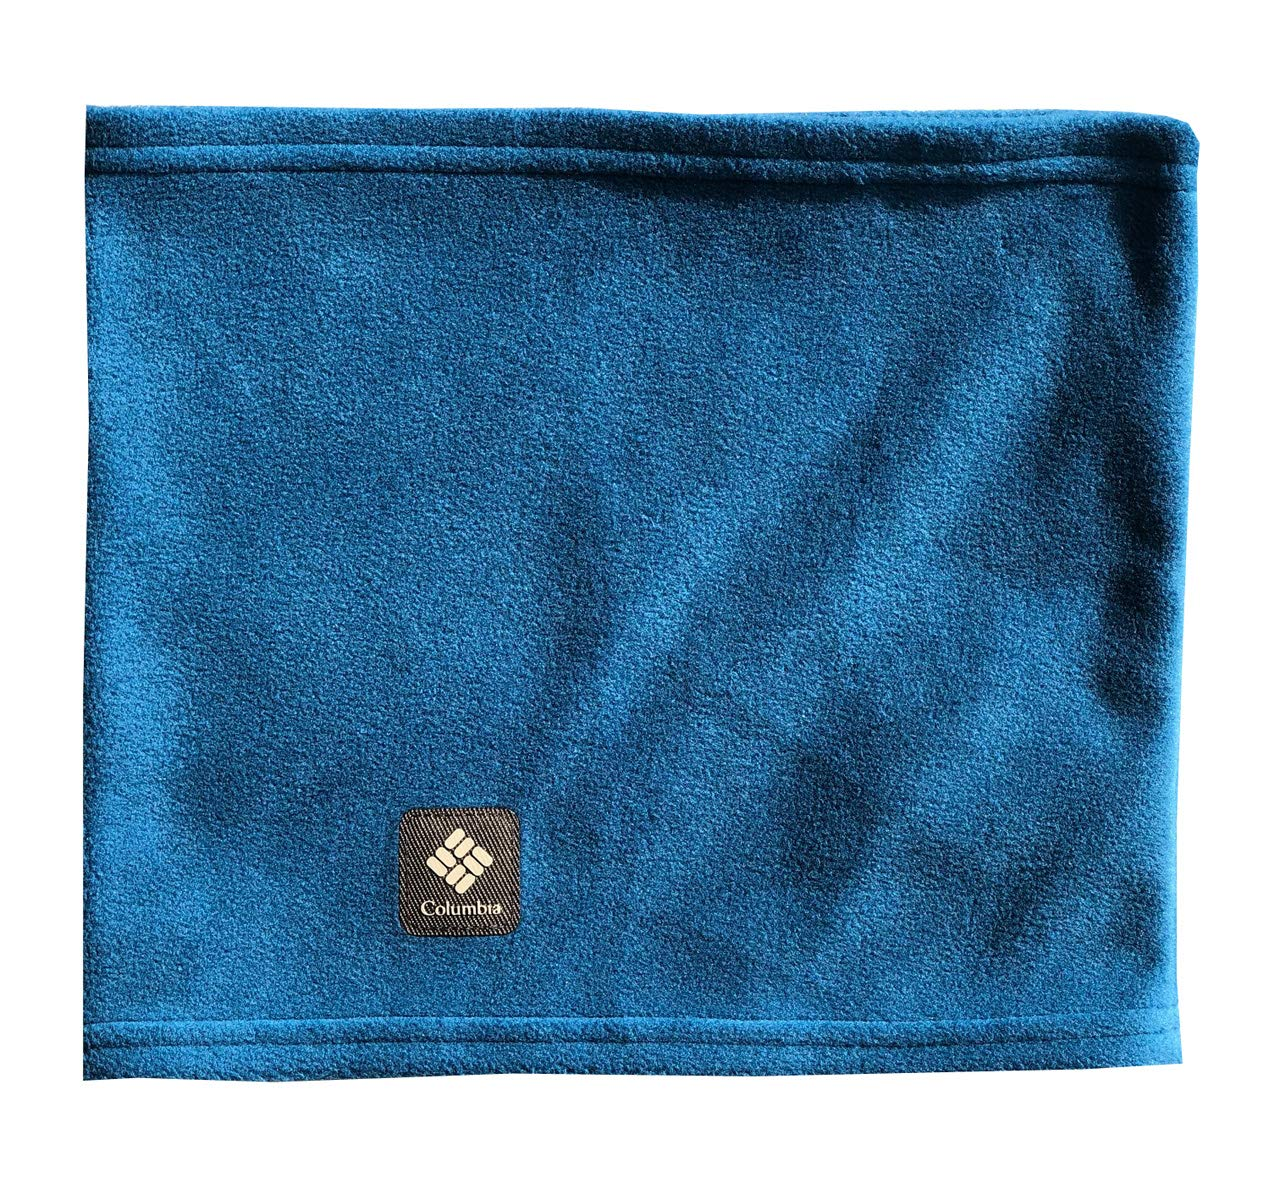 Columbia Unisex Agent Heat Omni-Heat Thermal Reflective Fleece Neck Gaiter Scarf (Teal) by Columbia